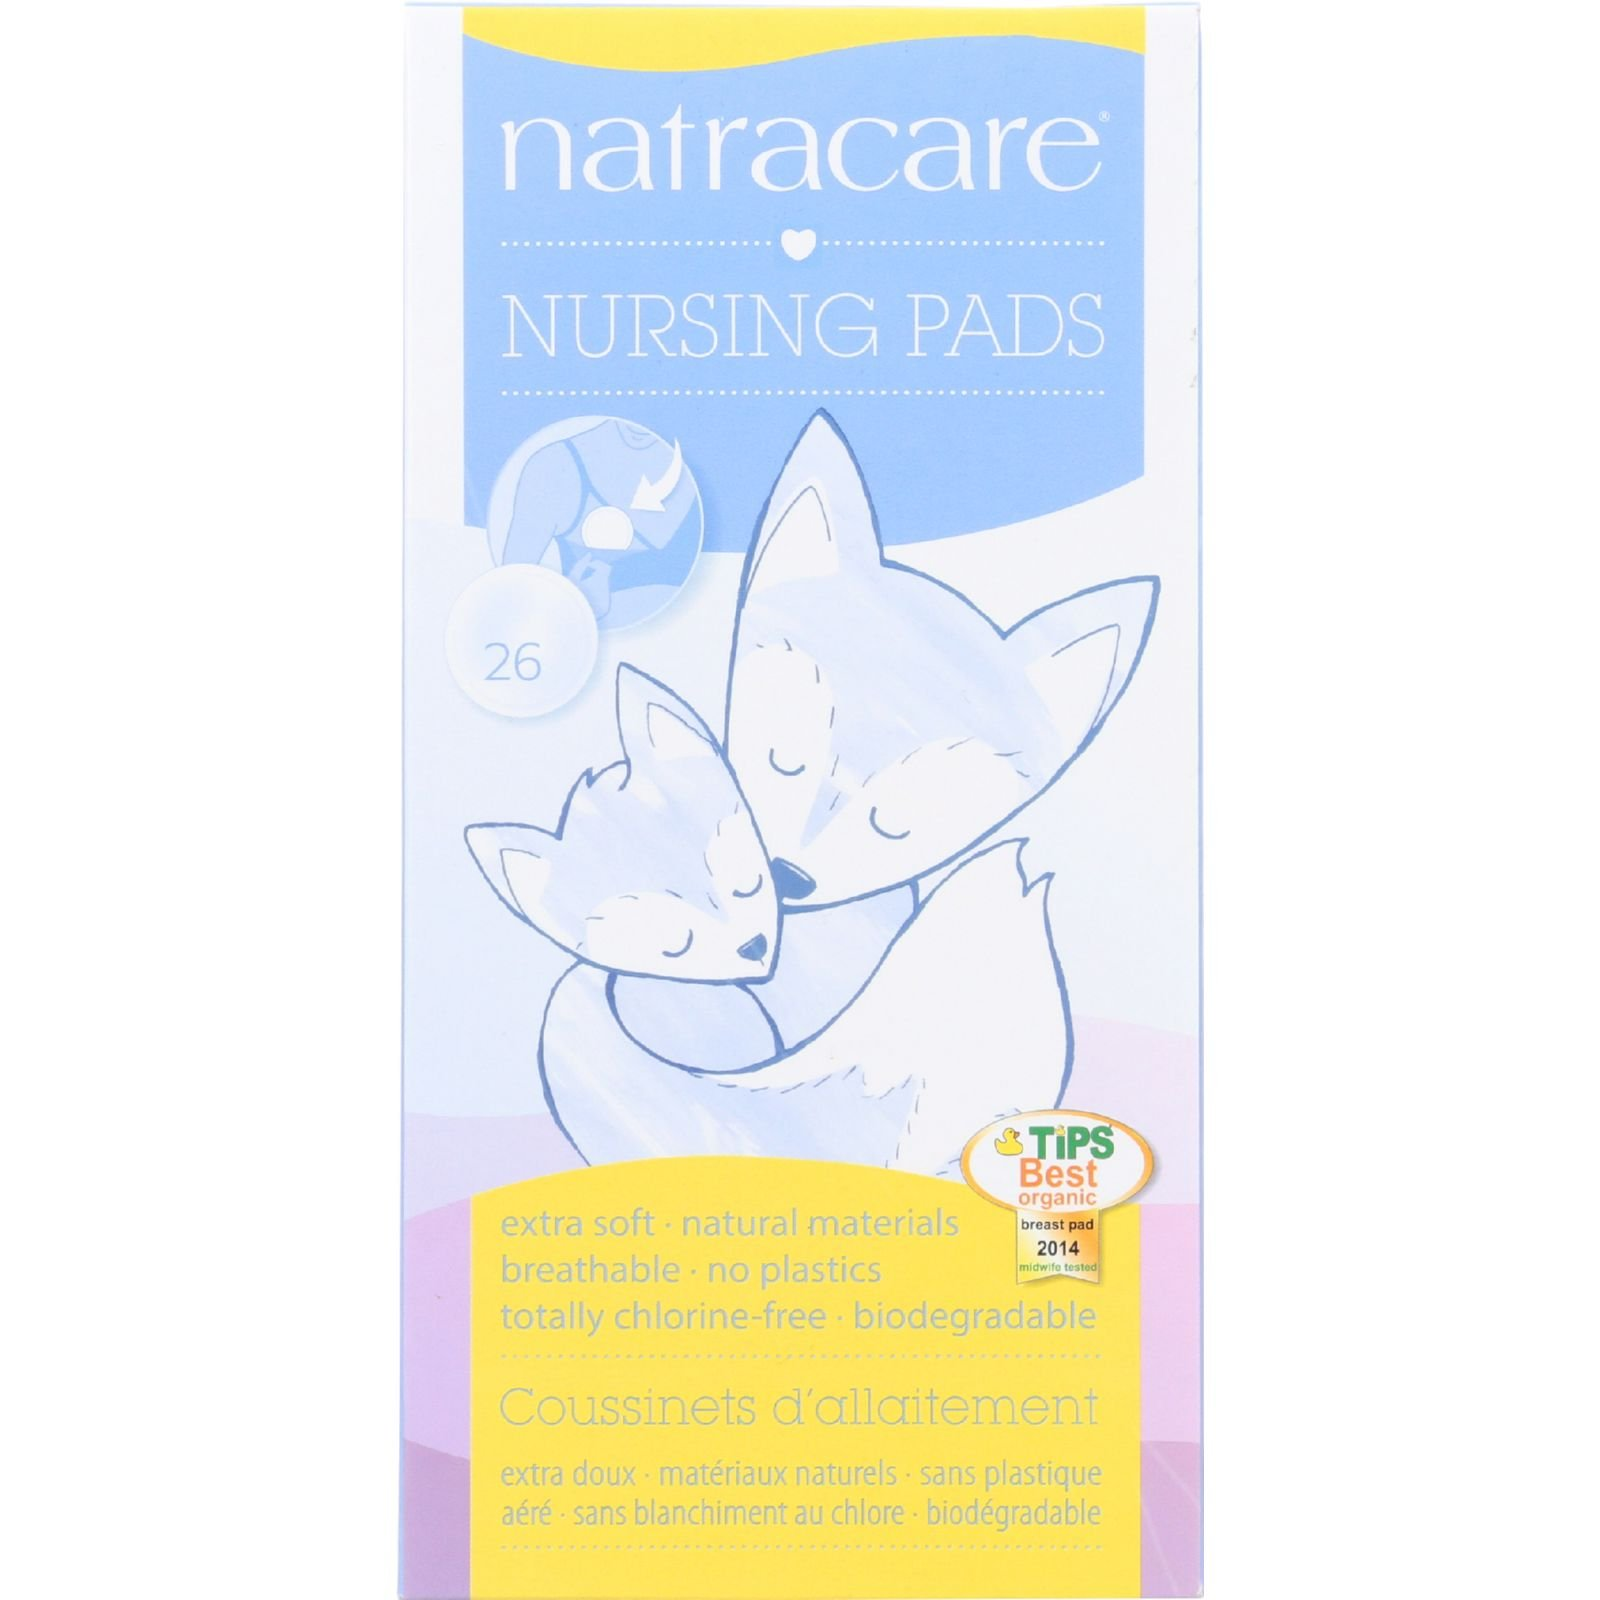 Natracare Natural Nursing Pads - No plastic - No perfumes - 26 Count (Pack of 2) by NATRACARE